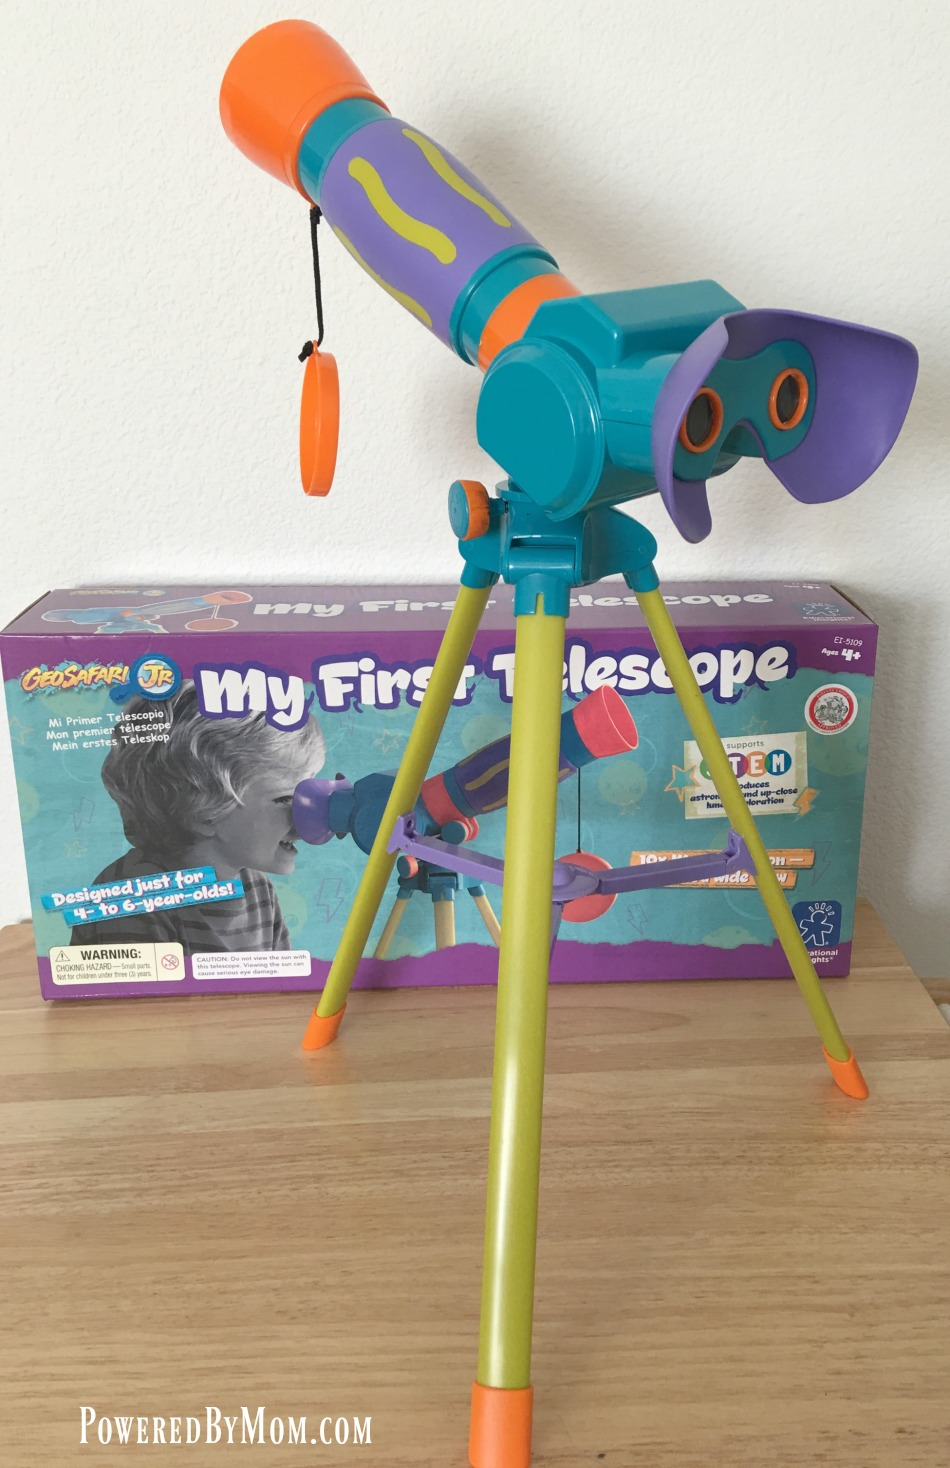 My First Telescope - Powered By Mom